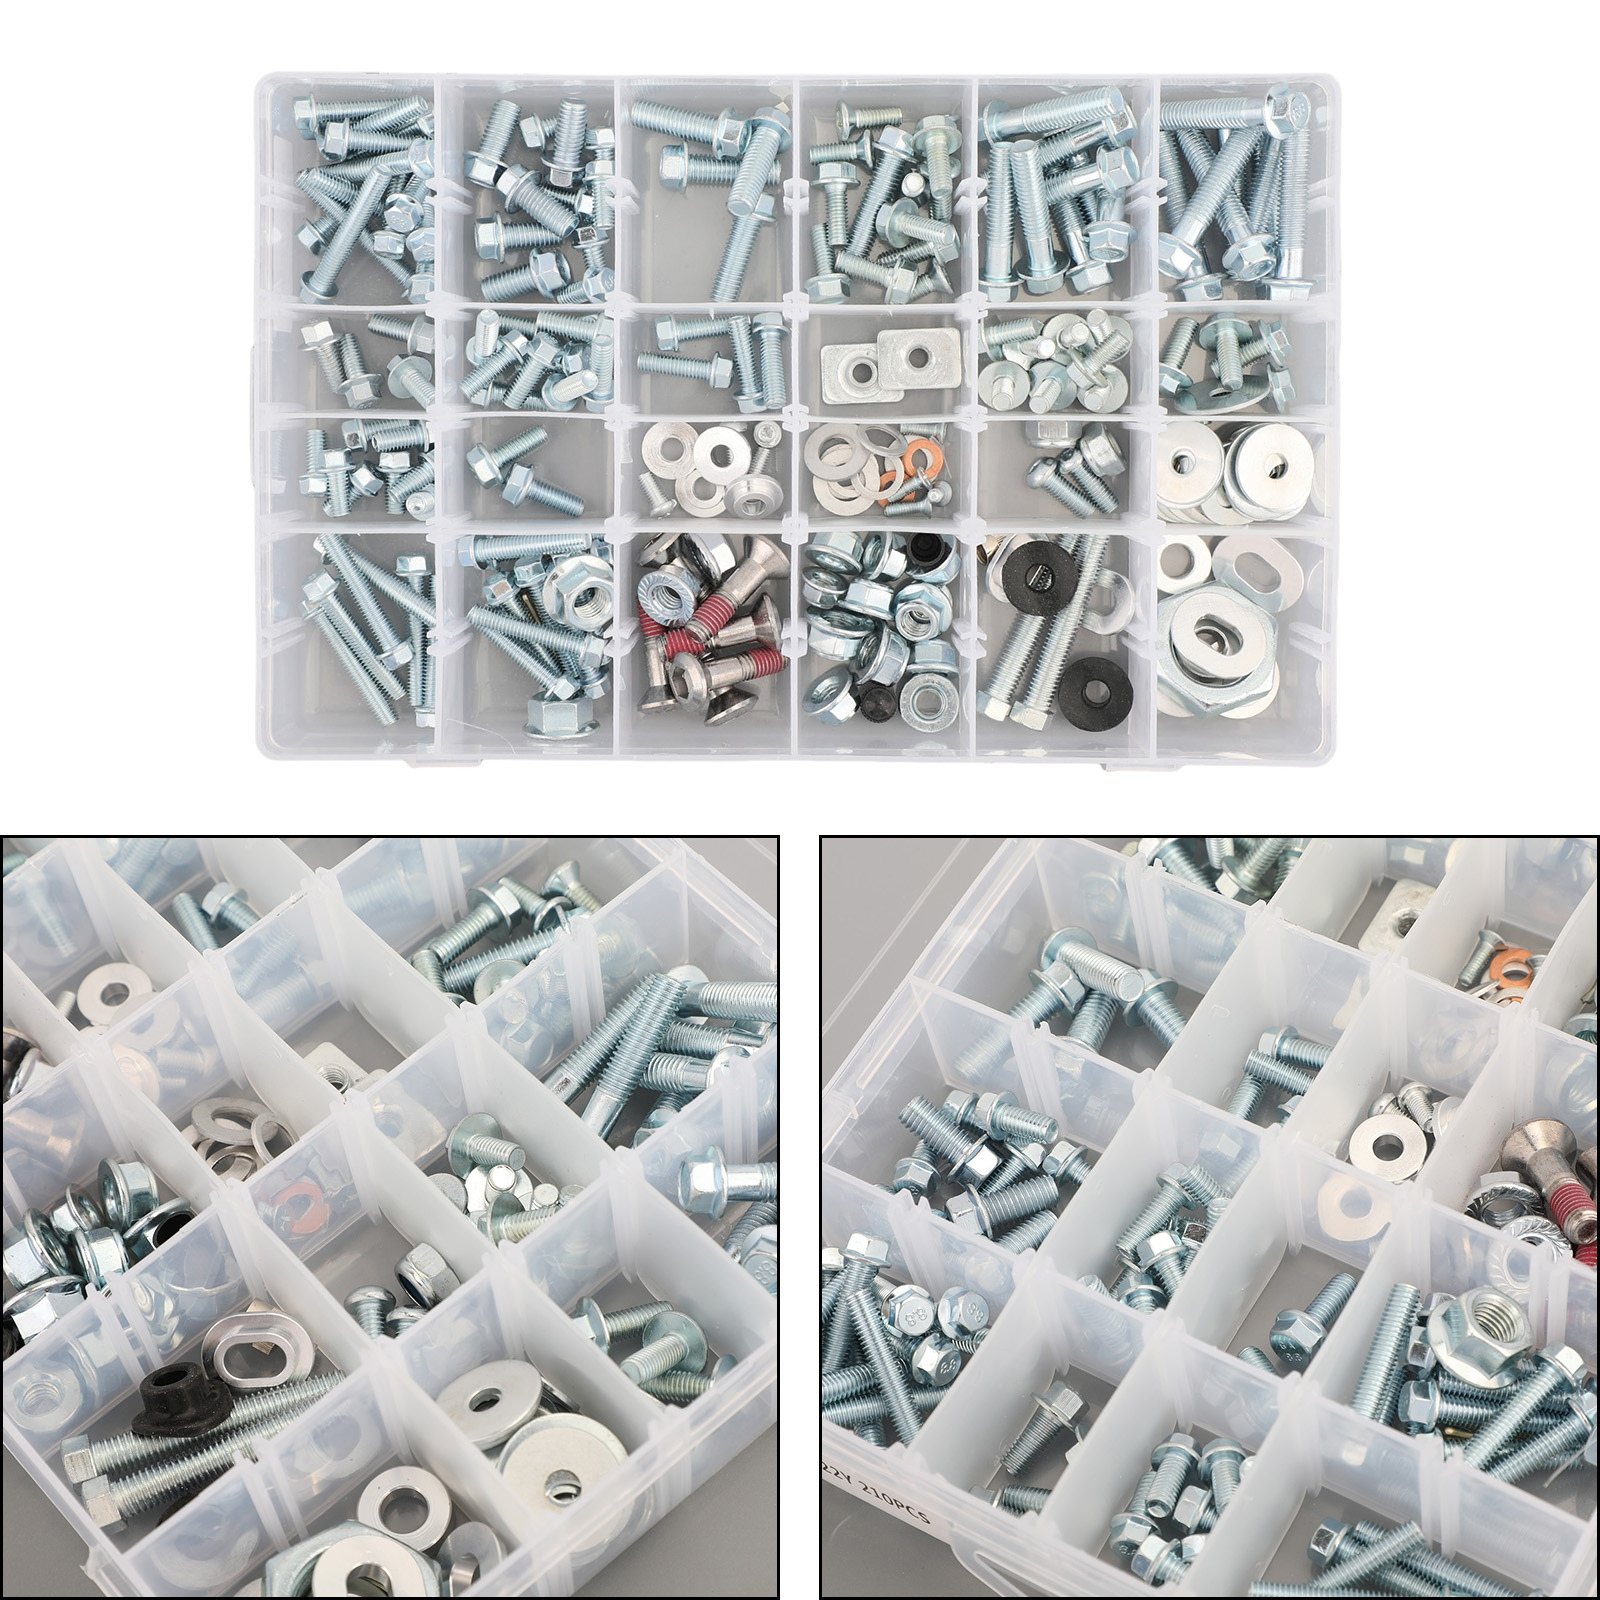 Artudatech <font><b>Body</b></font> Plastic Frame Seat 210PCS Bolt Fairing <font><b>Kit</b></font> Fit for <font><b>Yamaha</b></font> YZ 80 250 450 YZF 250 450 R1 <font><b>R6</b></font> 2019 2020 Accessories image